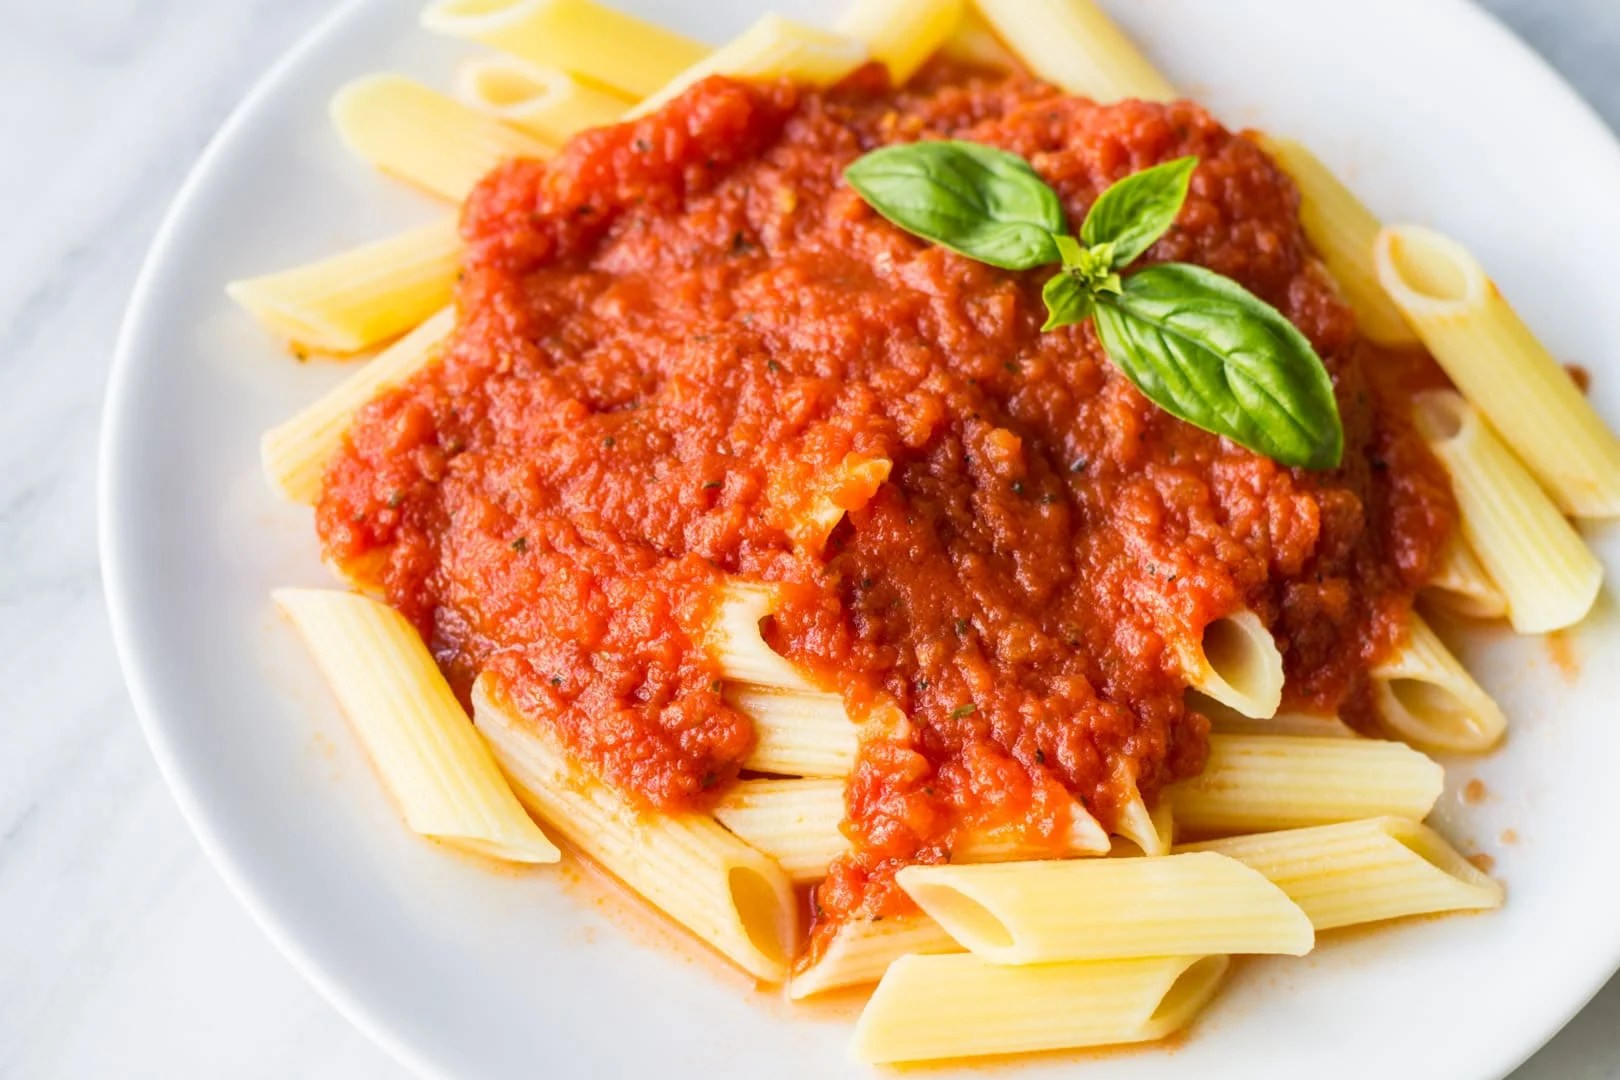 A fantastic Low FODMAP pasta sauce recipe - no onion or garlic needed! Serve over low FODMAP pasta or zucchini noodles for an easy meal!